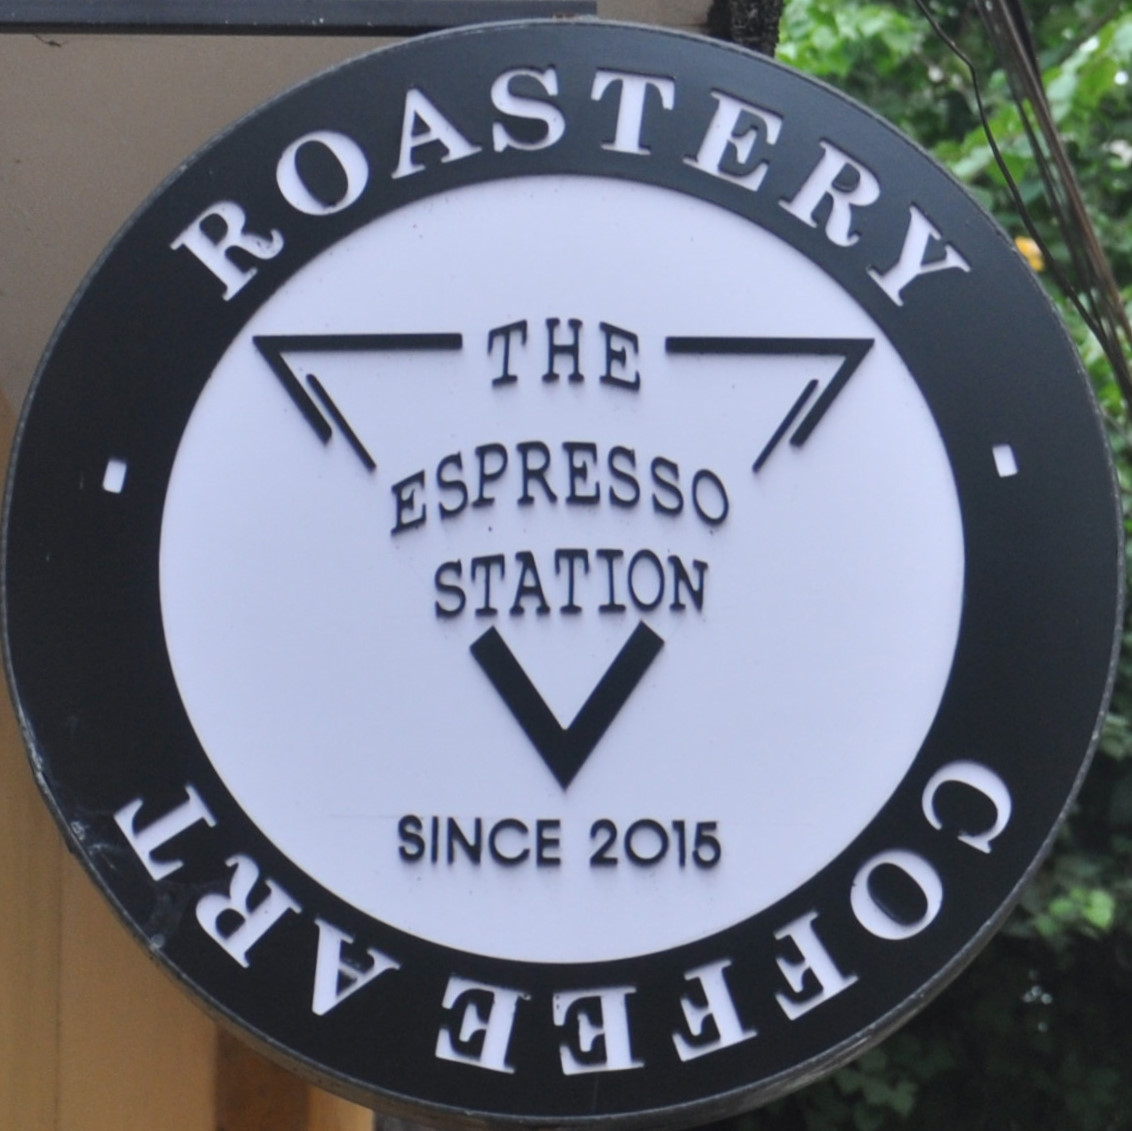 The Espresso Station logo, taken from a sign halfway down the alley which houses it in Hoi An.